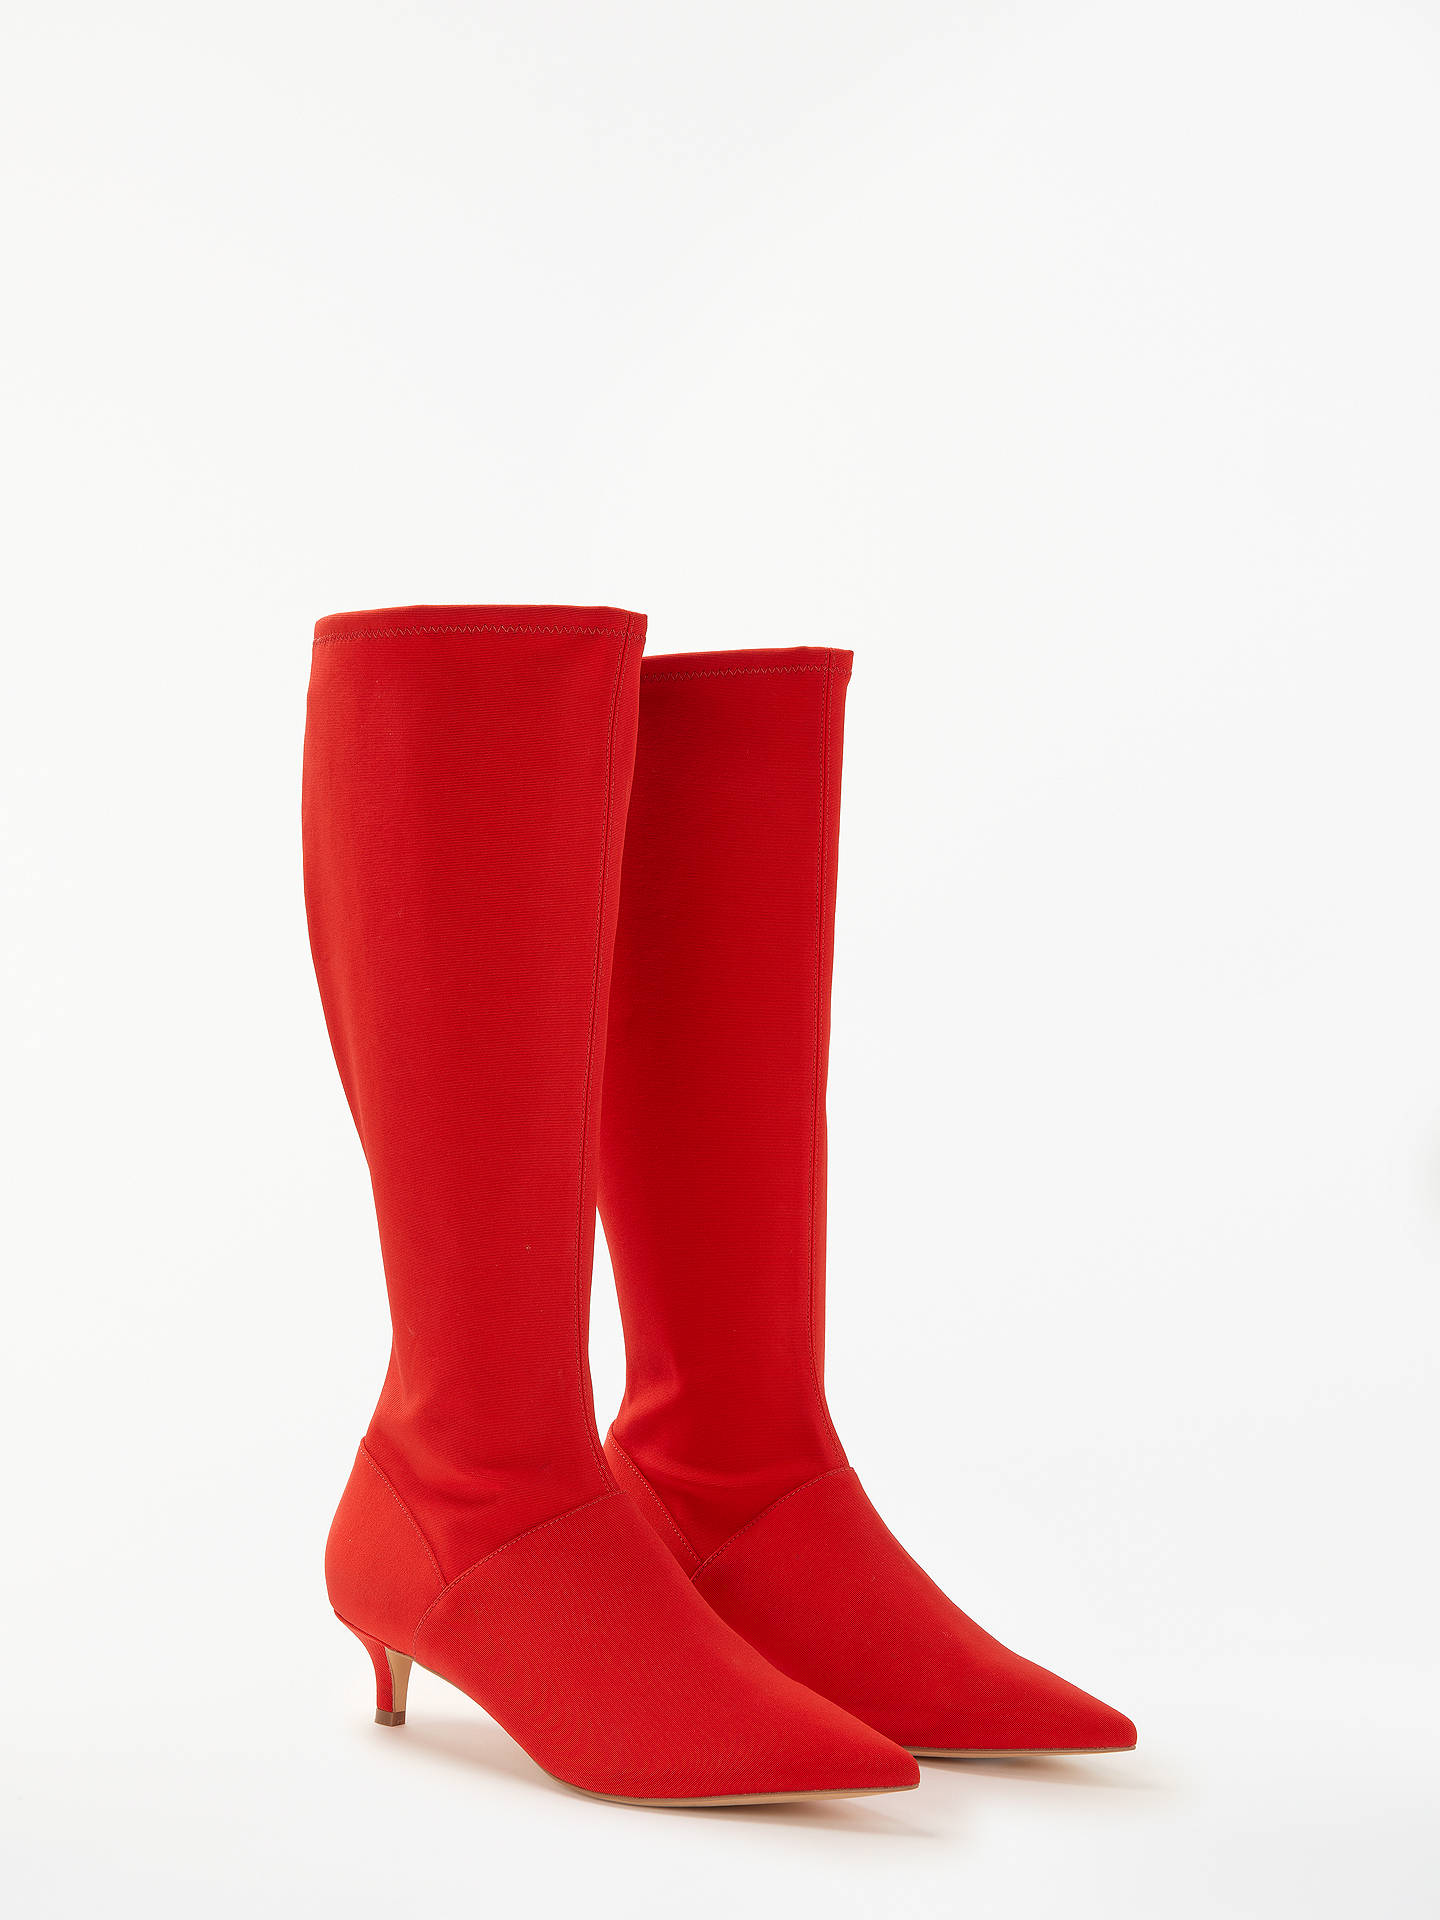 BuyBoden Kitten Heel Stretch Boots, Post Box Red, 4 Online at johnlewis.com